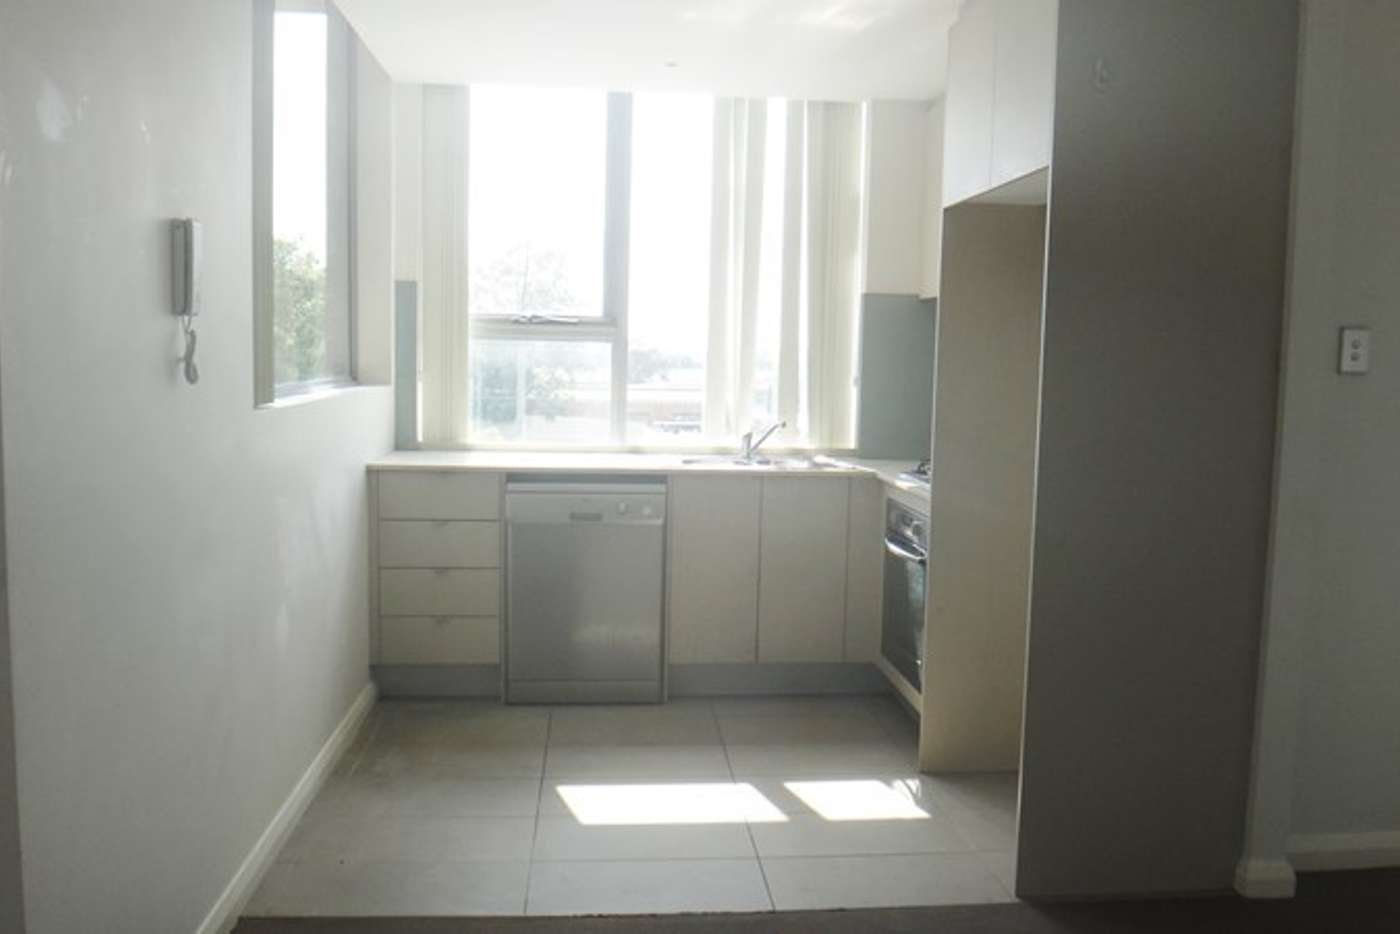 Main view of Homely studio listing, 55/108 James Ruse Drive, Rosehill NSW 2142